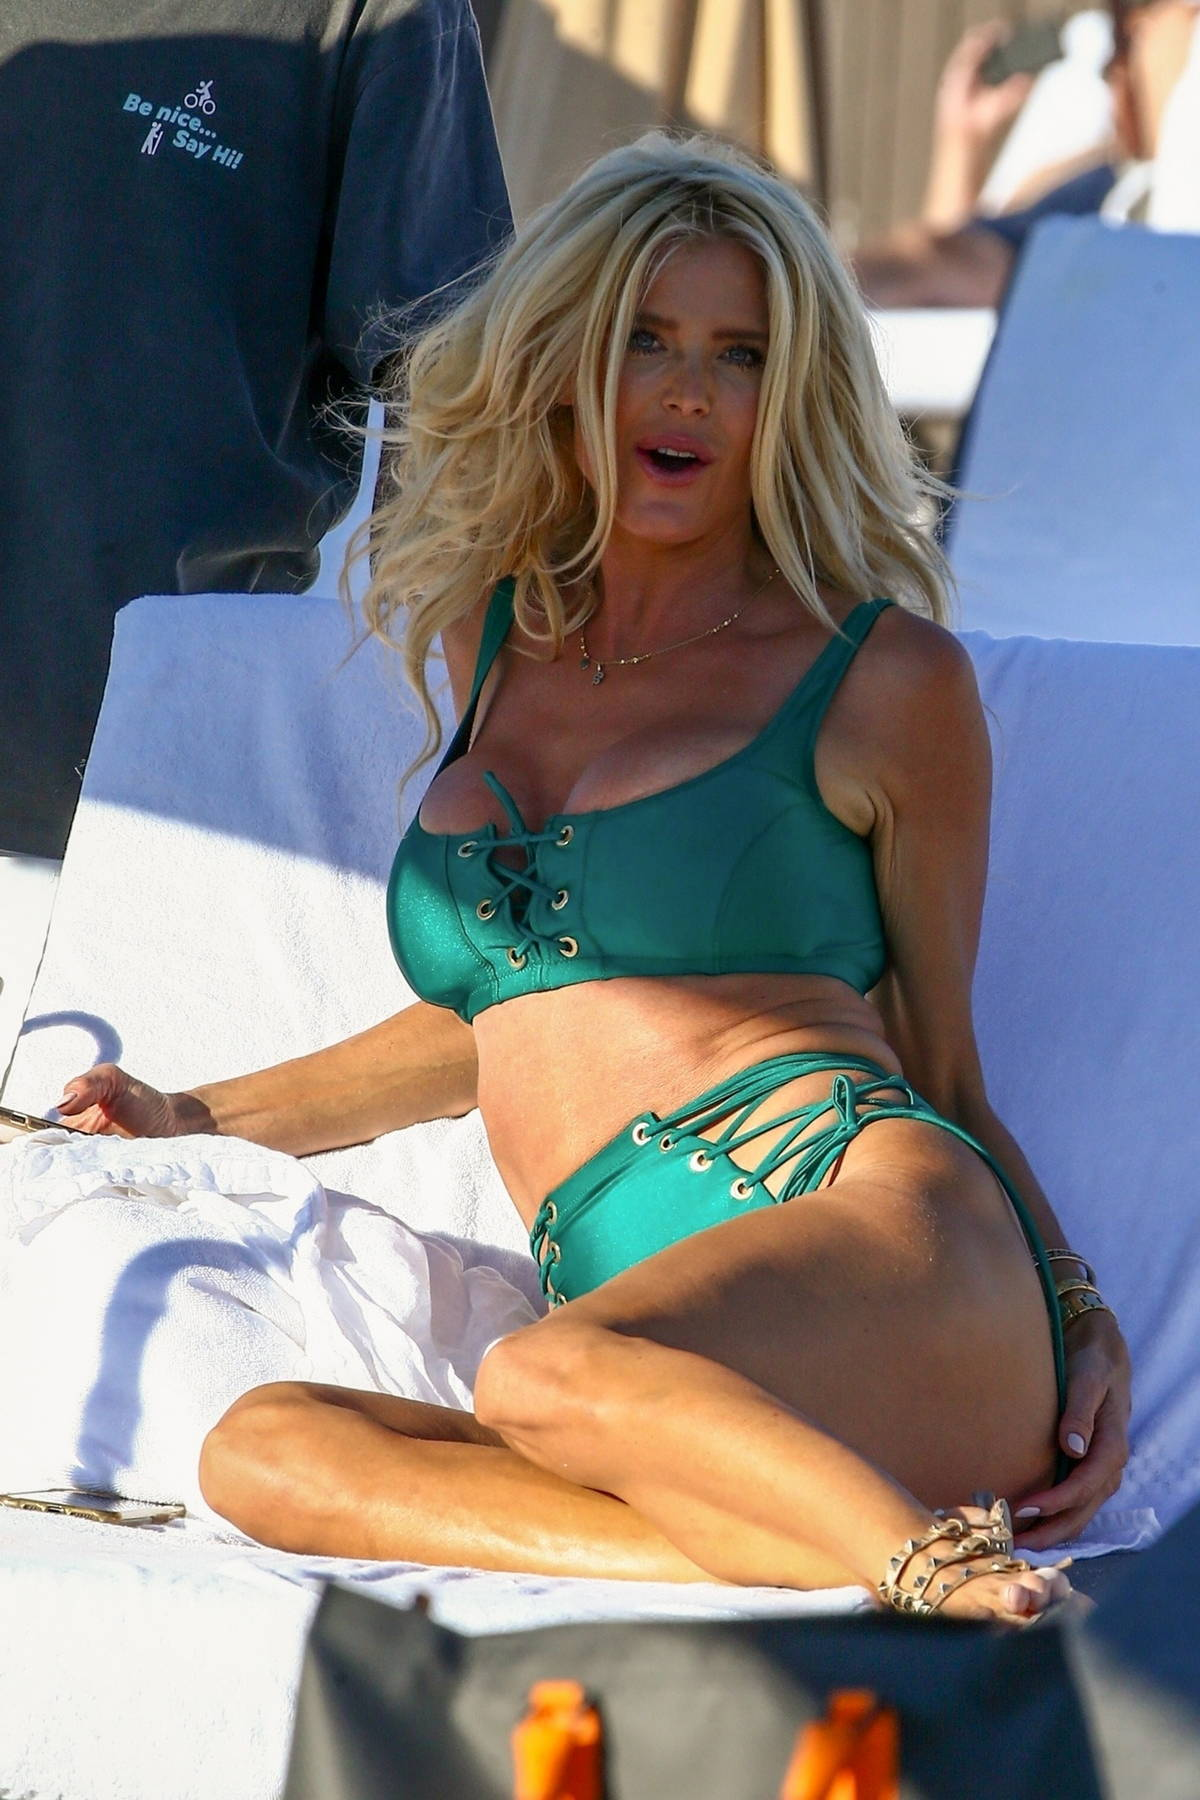 Victoria Silvstedt shows off her tan figure in a green bikini while relaxing on the beach in Miami Beach, Florida